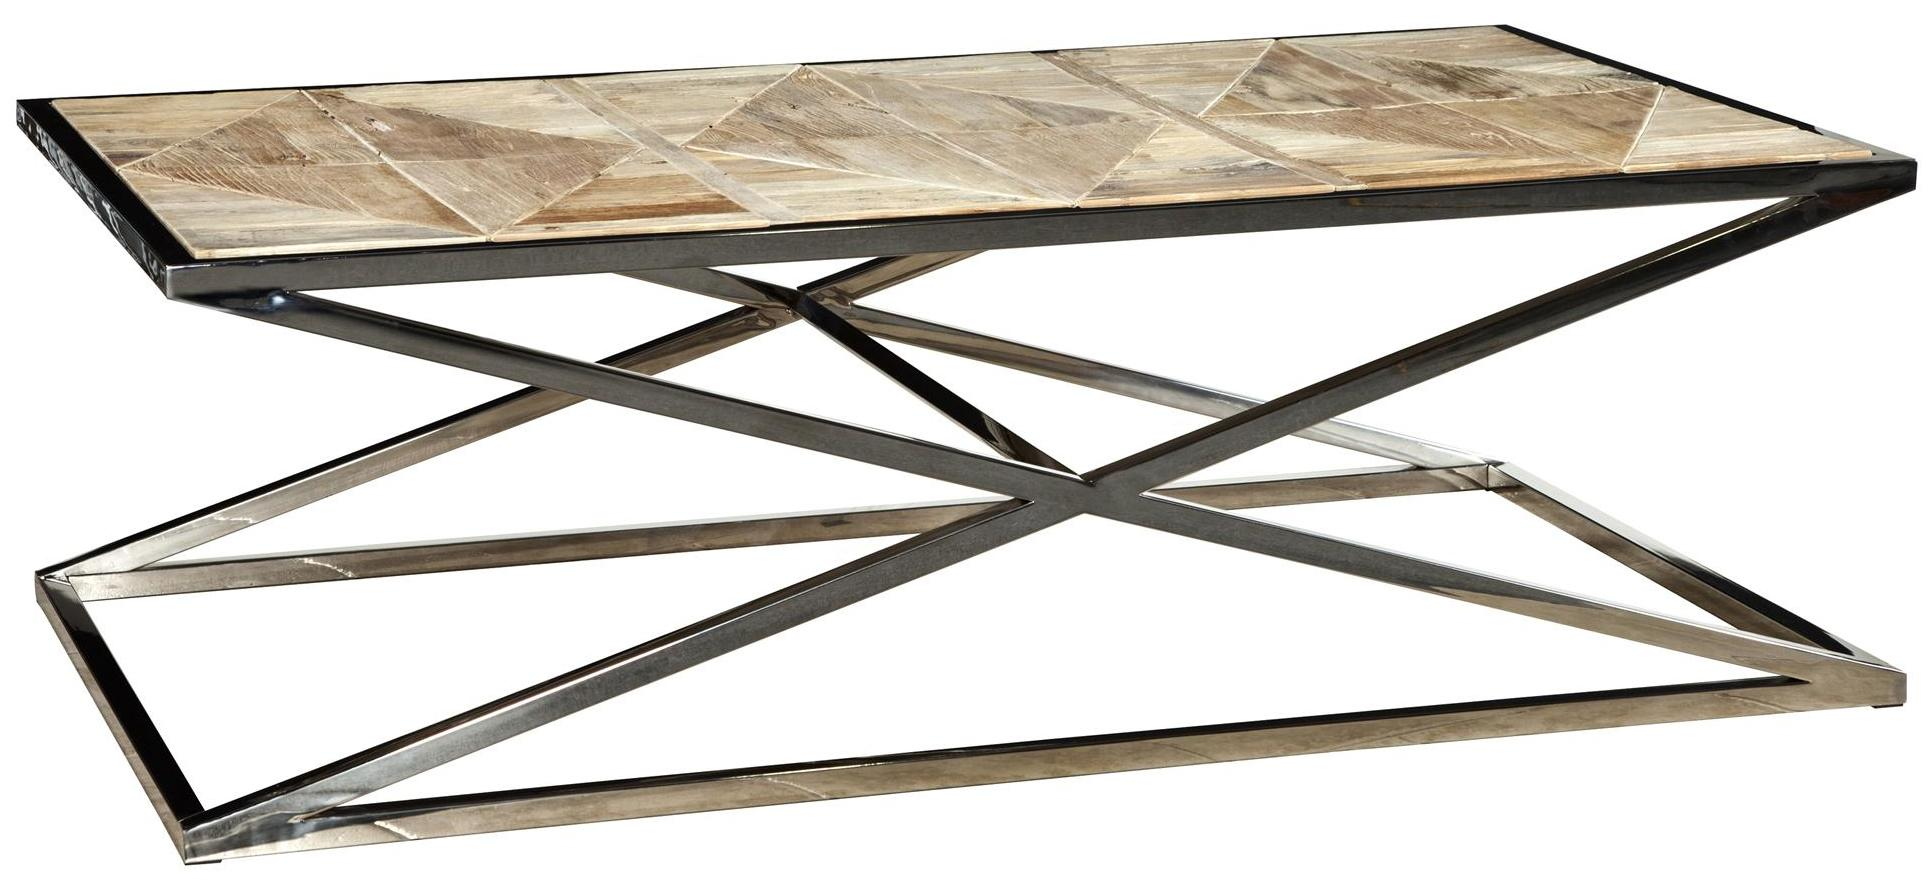 Furniture Classics Accents Coffee Table - Item Number: 72275